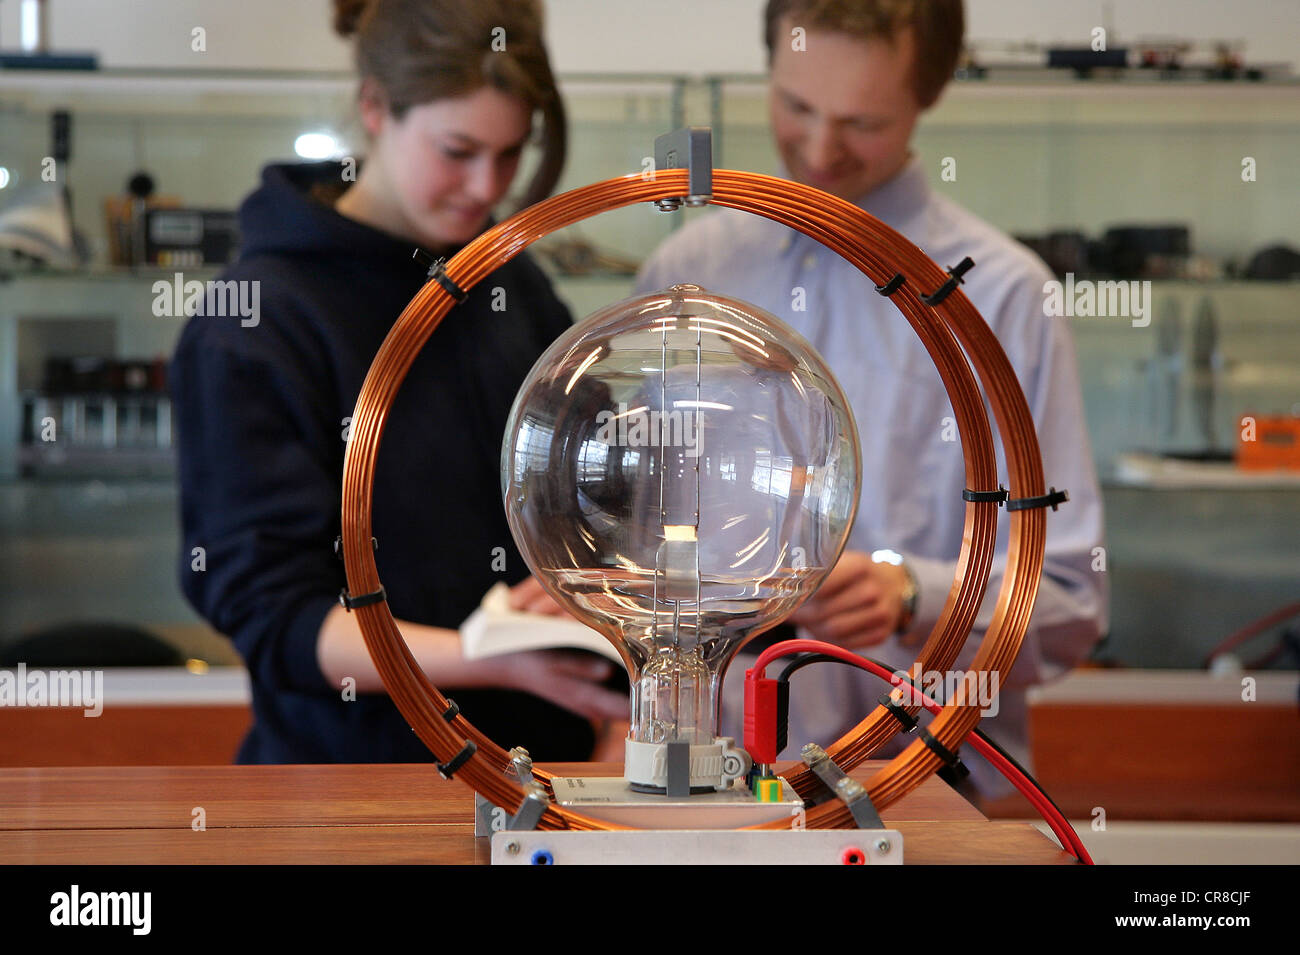 physics experiments Physics experiments and other physics related research have influenced our world in many different ways it has revolutionized modern technology and has changed how we view the world this article is a part of the guide.